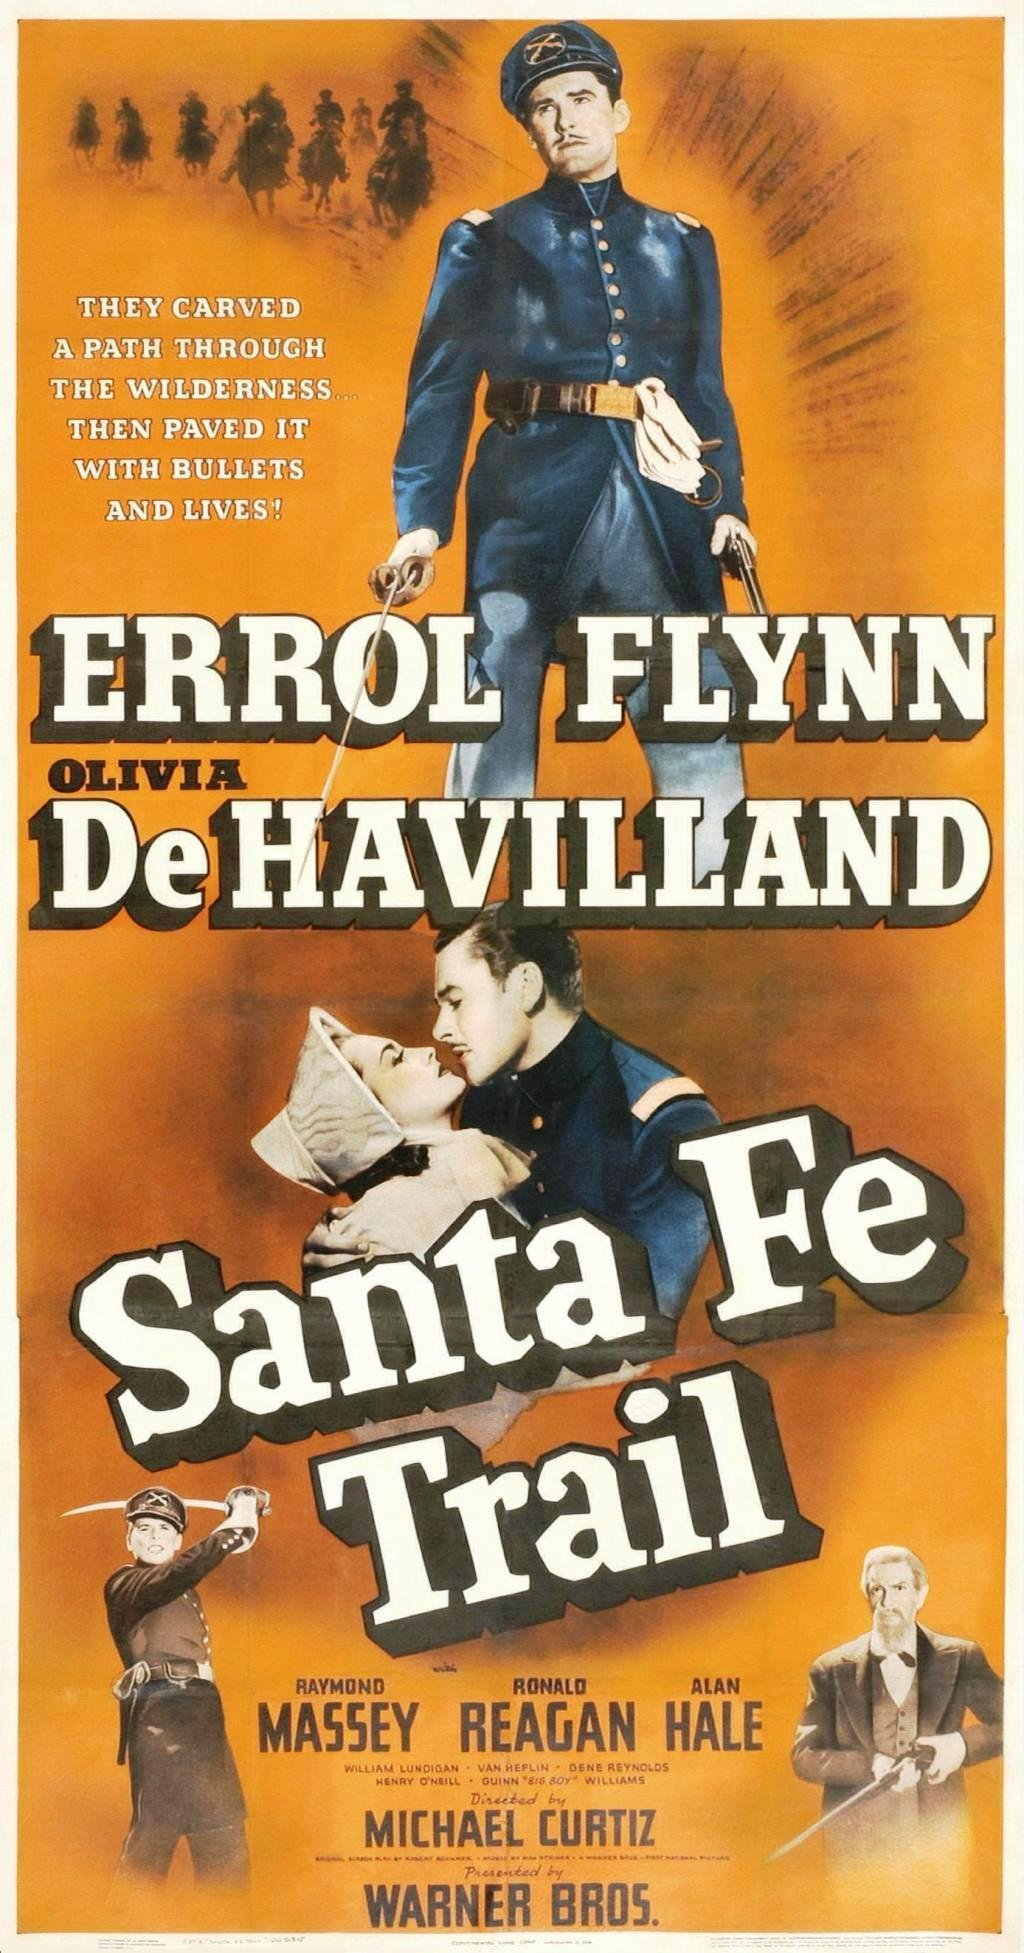 errol flynn archives great western movies